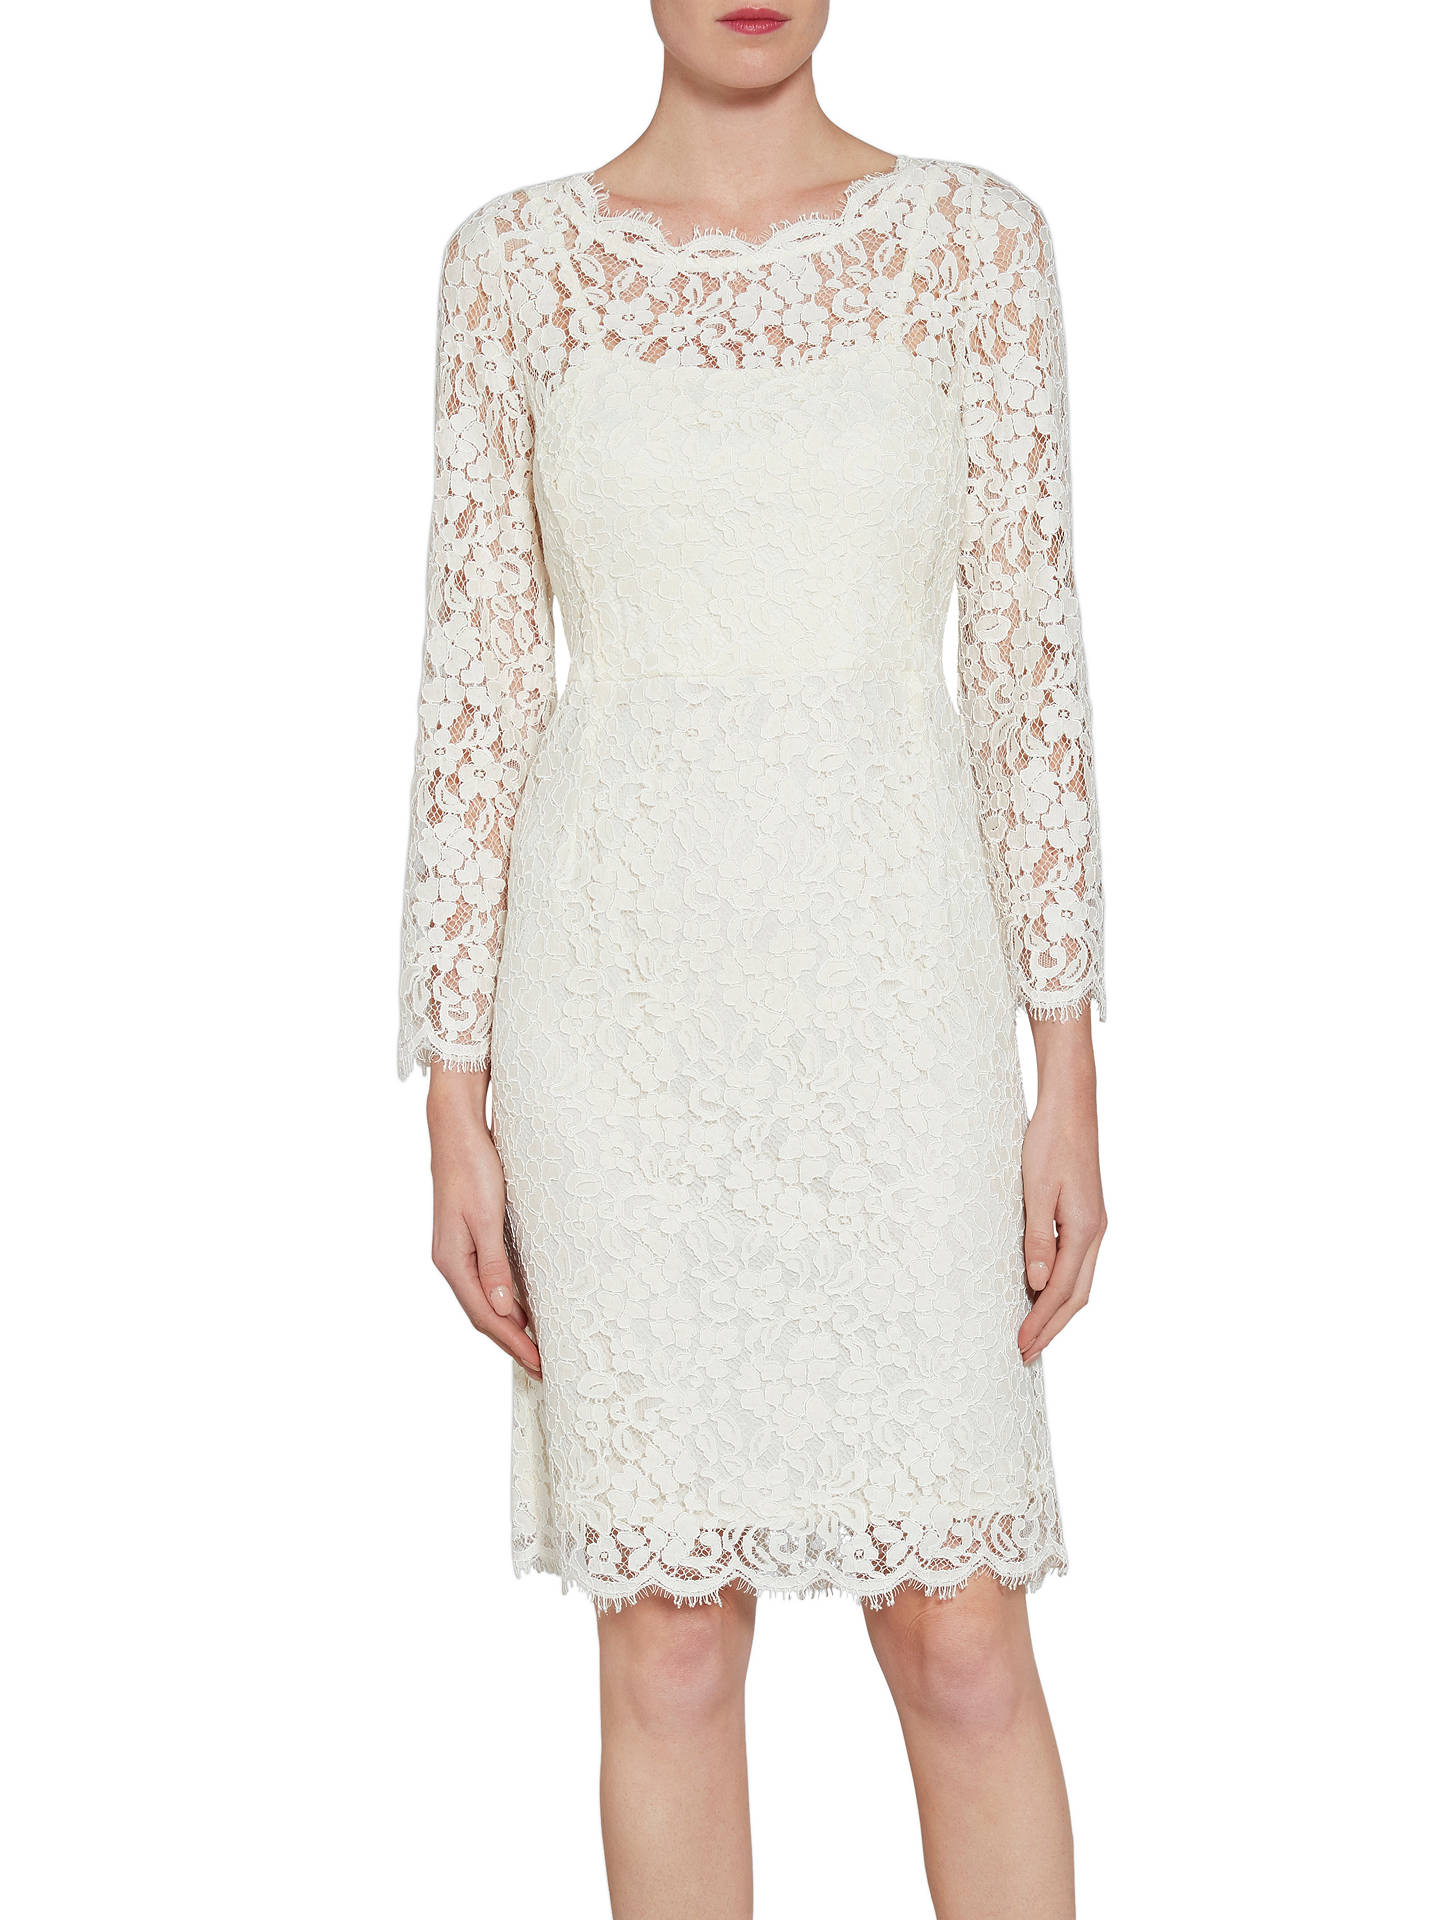 Gina bacconi lace dress with jewelled flower buttons off white at buygina bacconi lace dress with jewelled flower buttons off white 16 online at johnlewis mightylinksfo